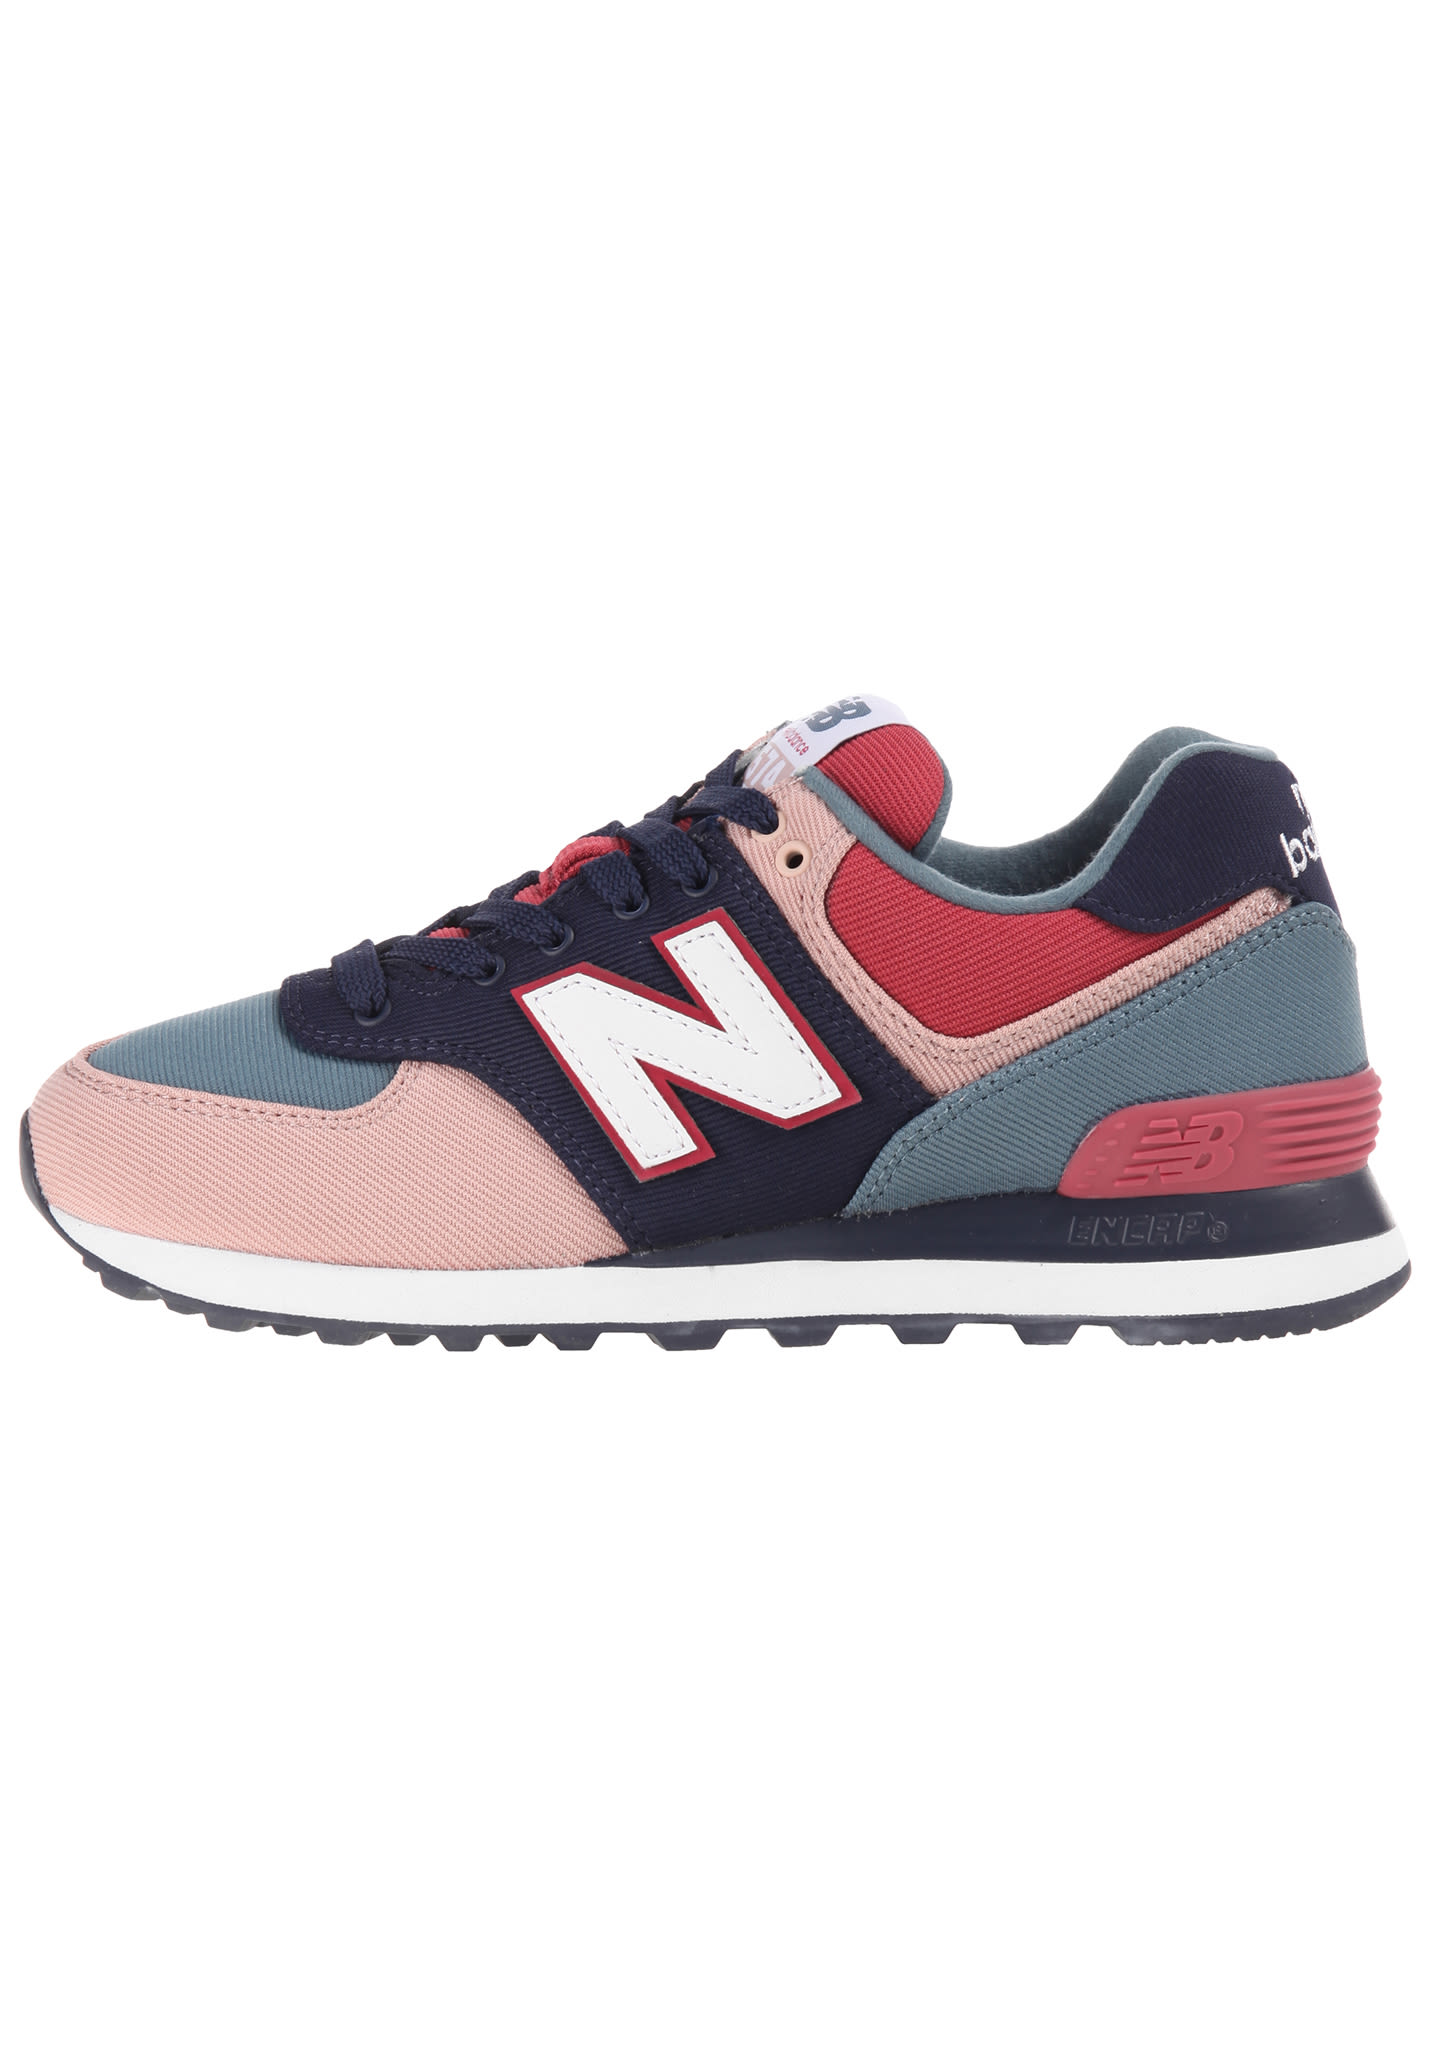 Femme Multi 574 Multicolores Chaussures New Balance Baskets